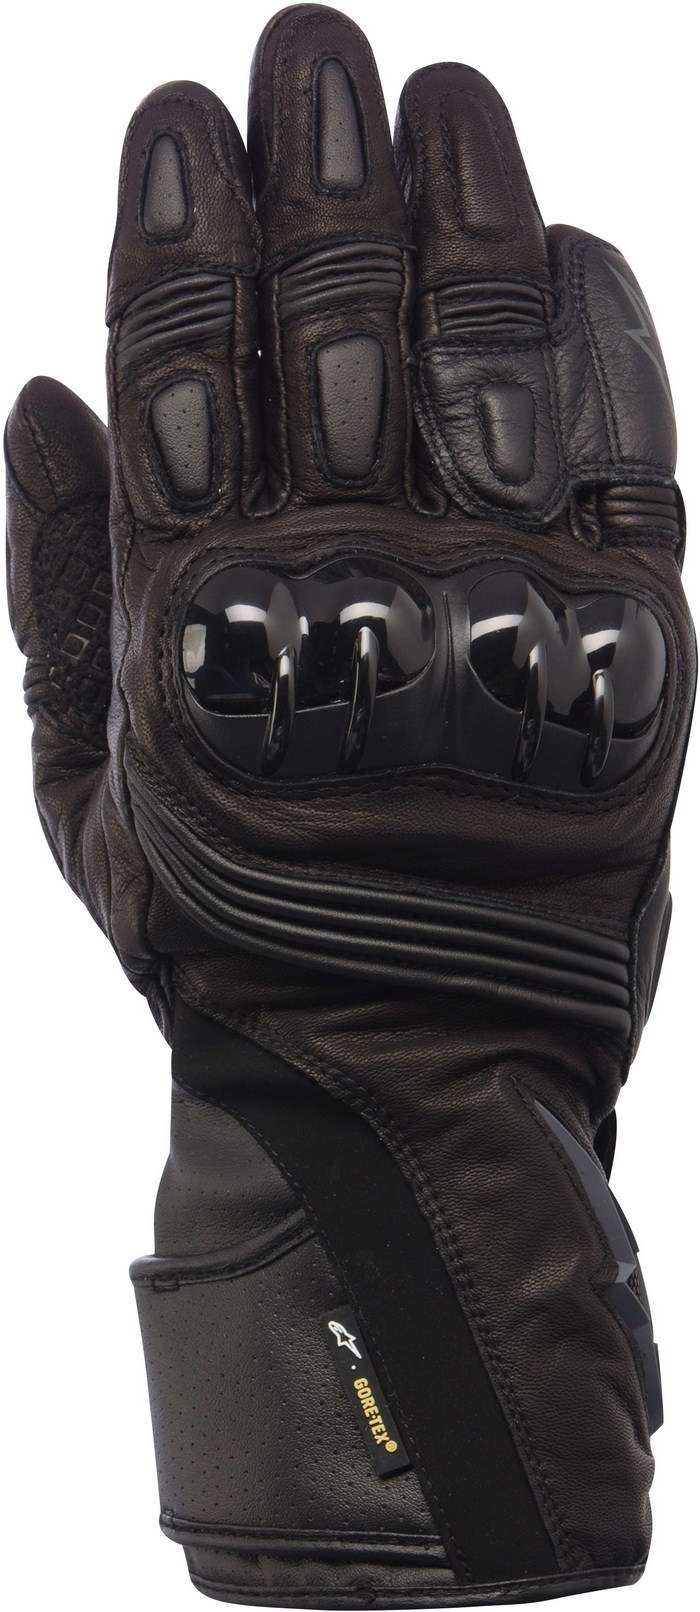 Alpinestars Archer X-Trafit gloves black